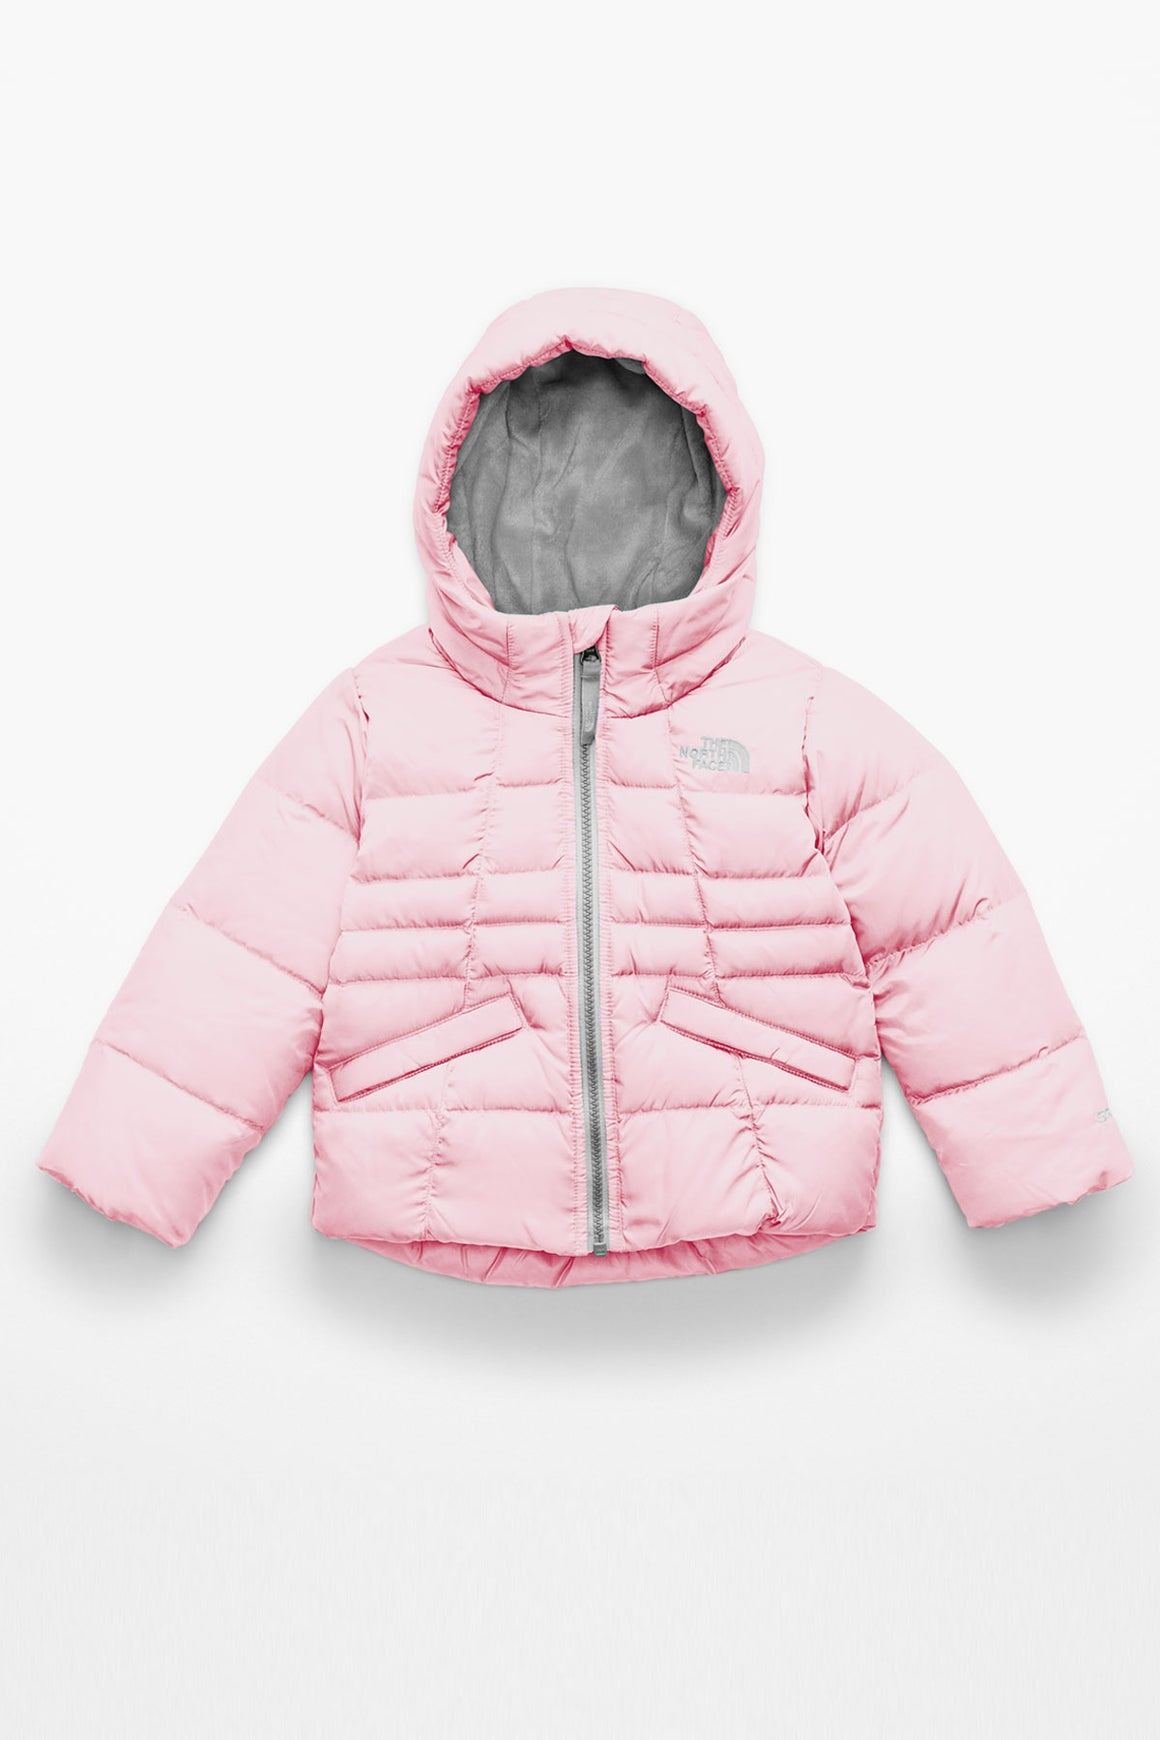 The North Face Toddler Girls Moondoggy - Purdy Pink